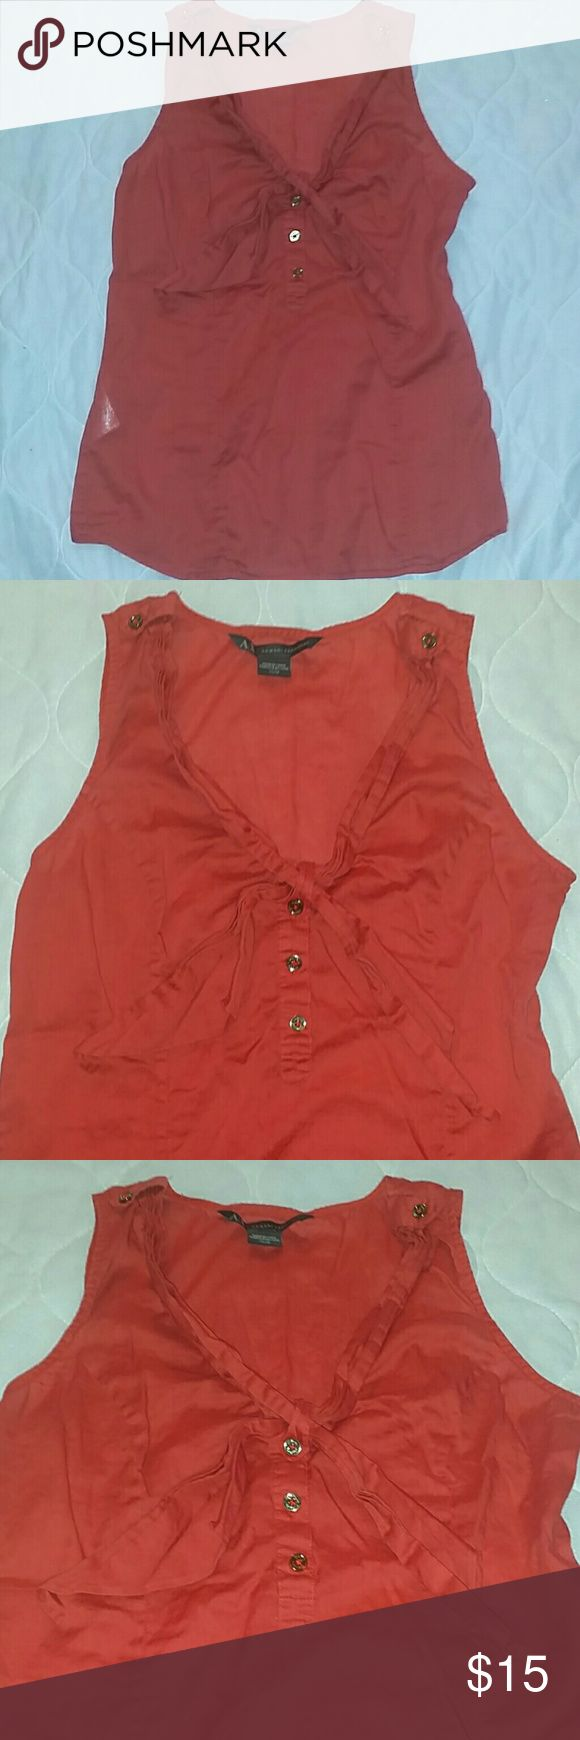 Armani Exchange Top Armani Exchange Top | Size XS | Red Armani Exchange Tops